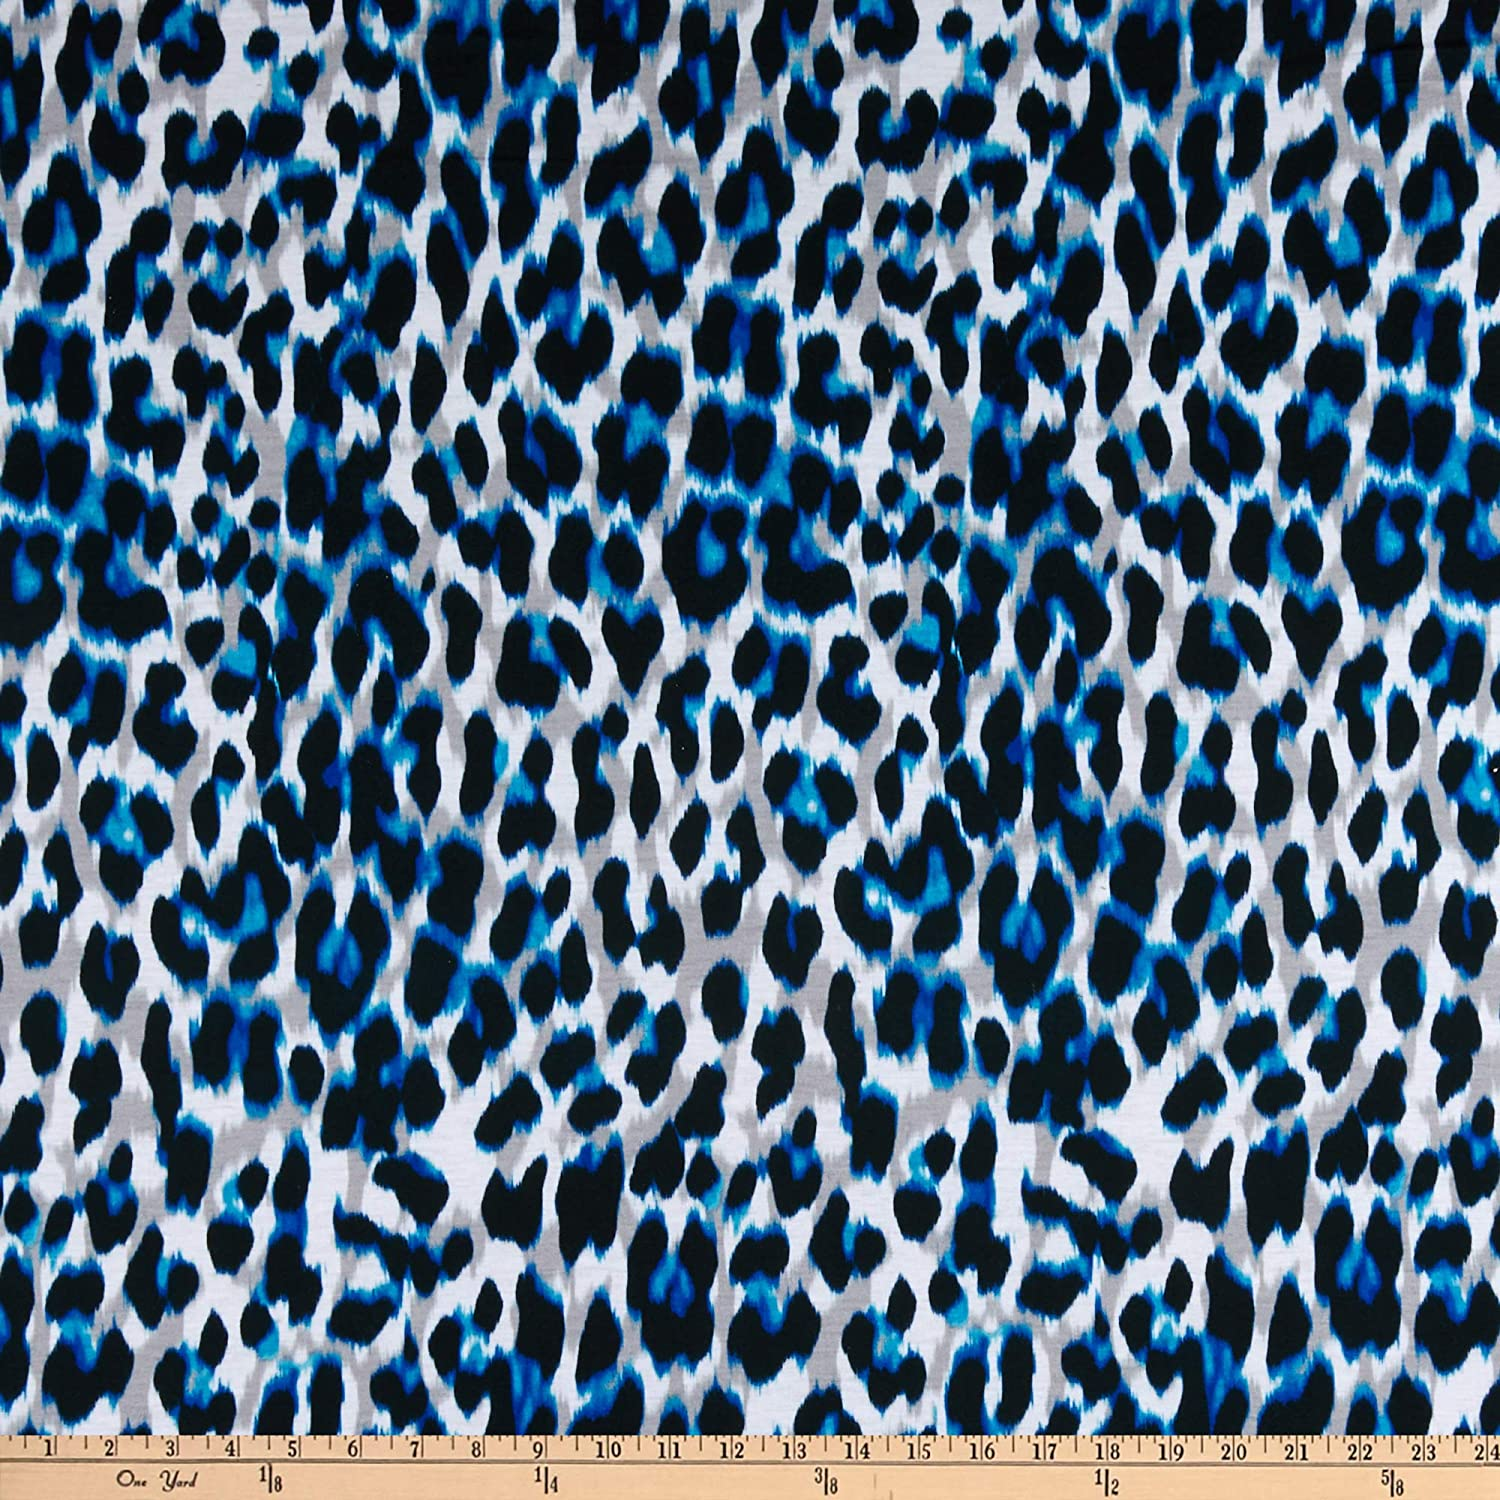 Butterfly Print Fabric Soft Jersey Spun Polyester Fabric-FREE SAME DAY DISPATCH